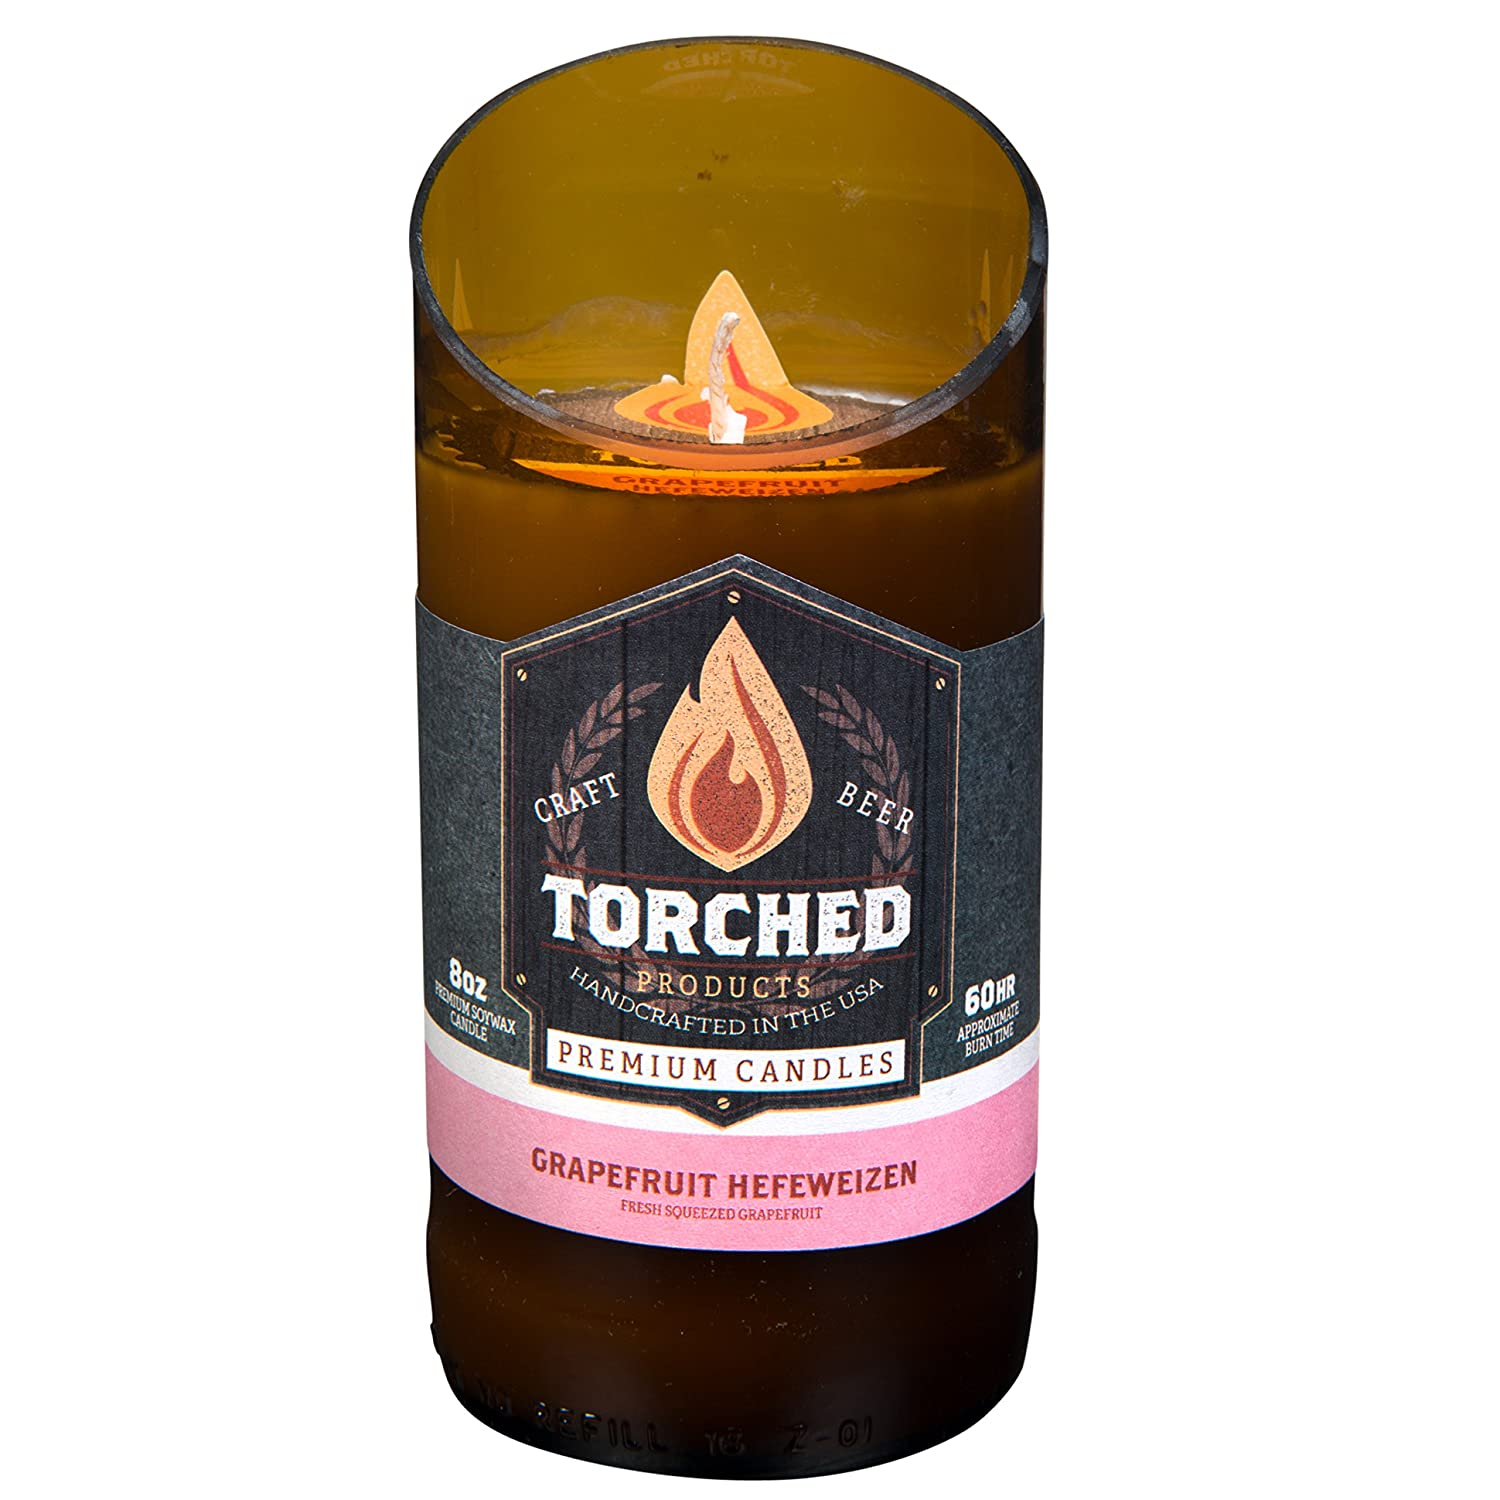 Amazon Torched Beer Bottle Candles 60 Hour Burn Time 8